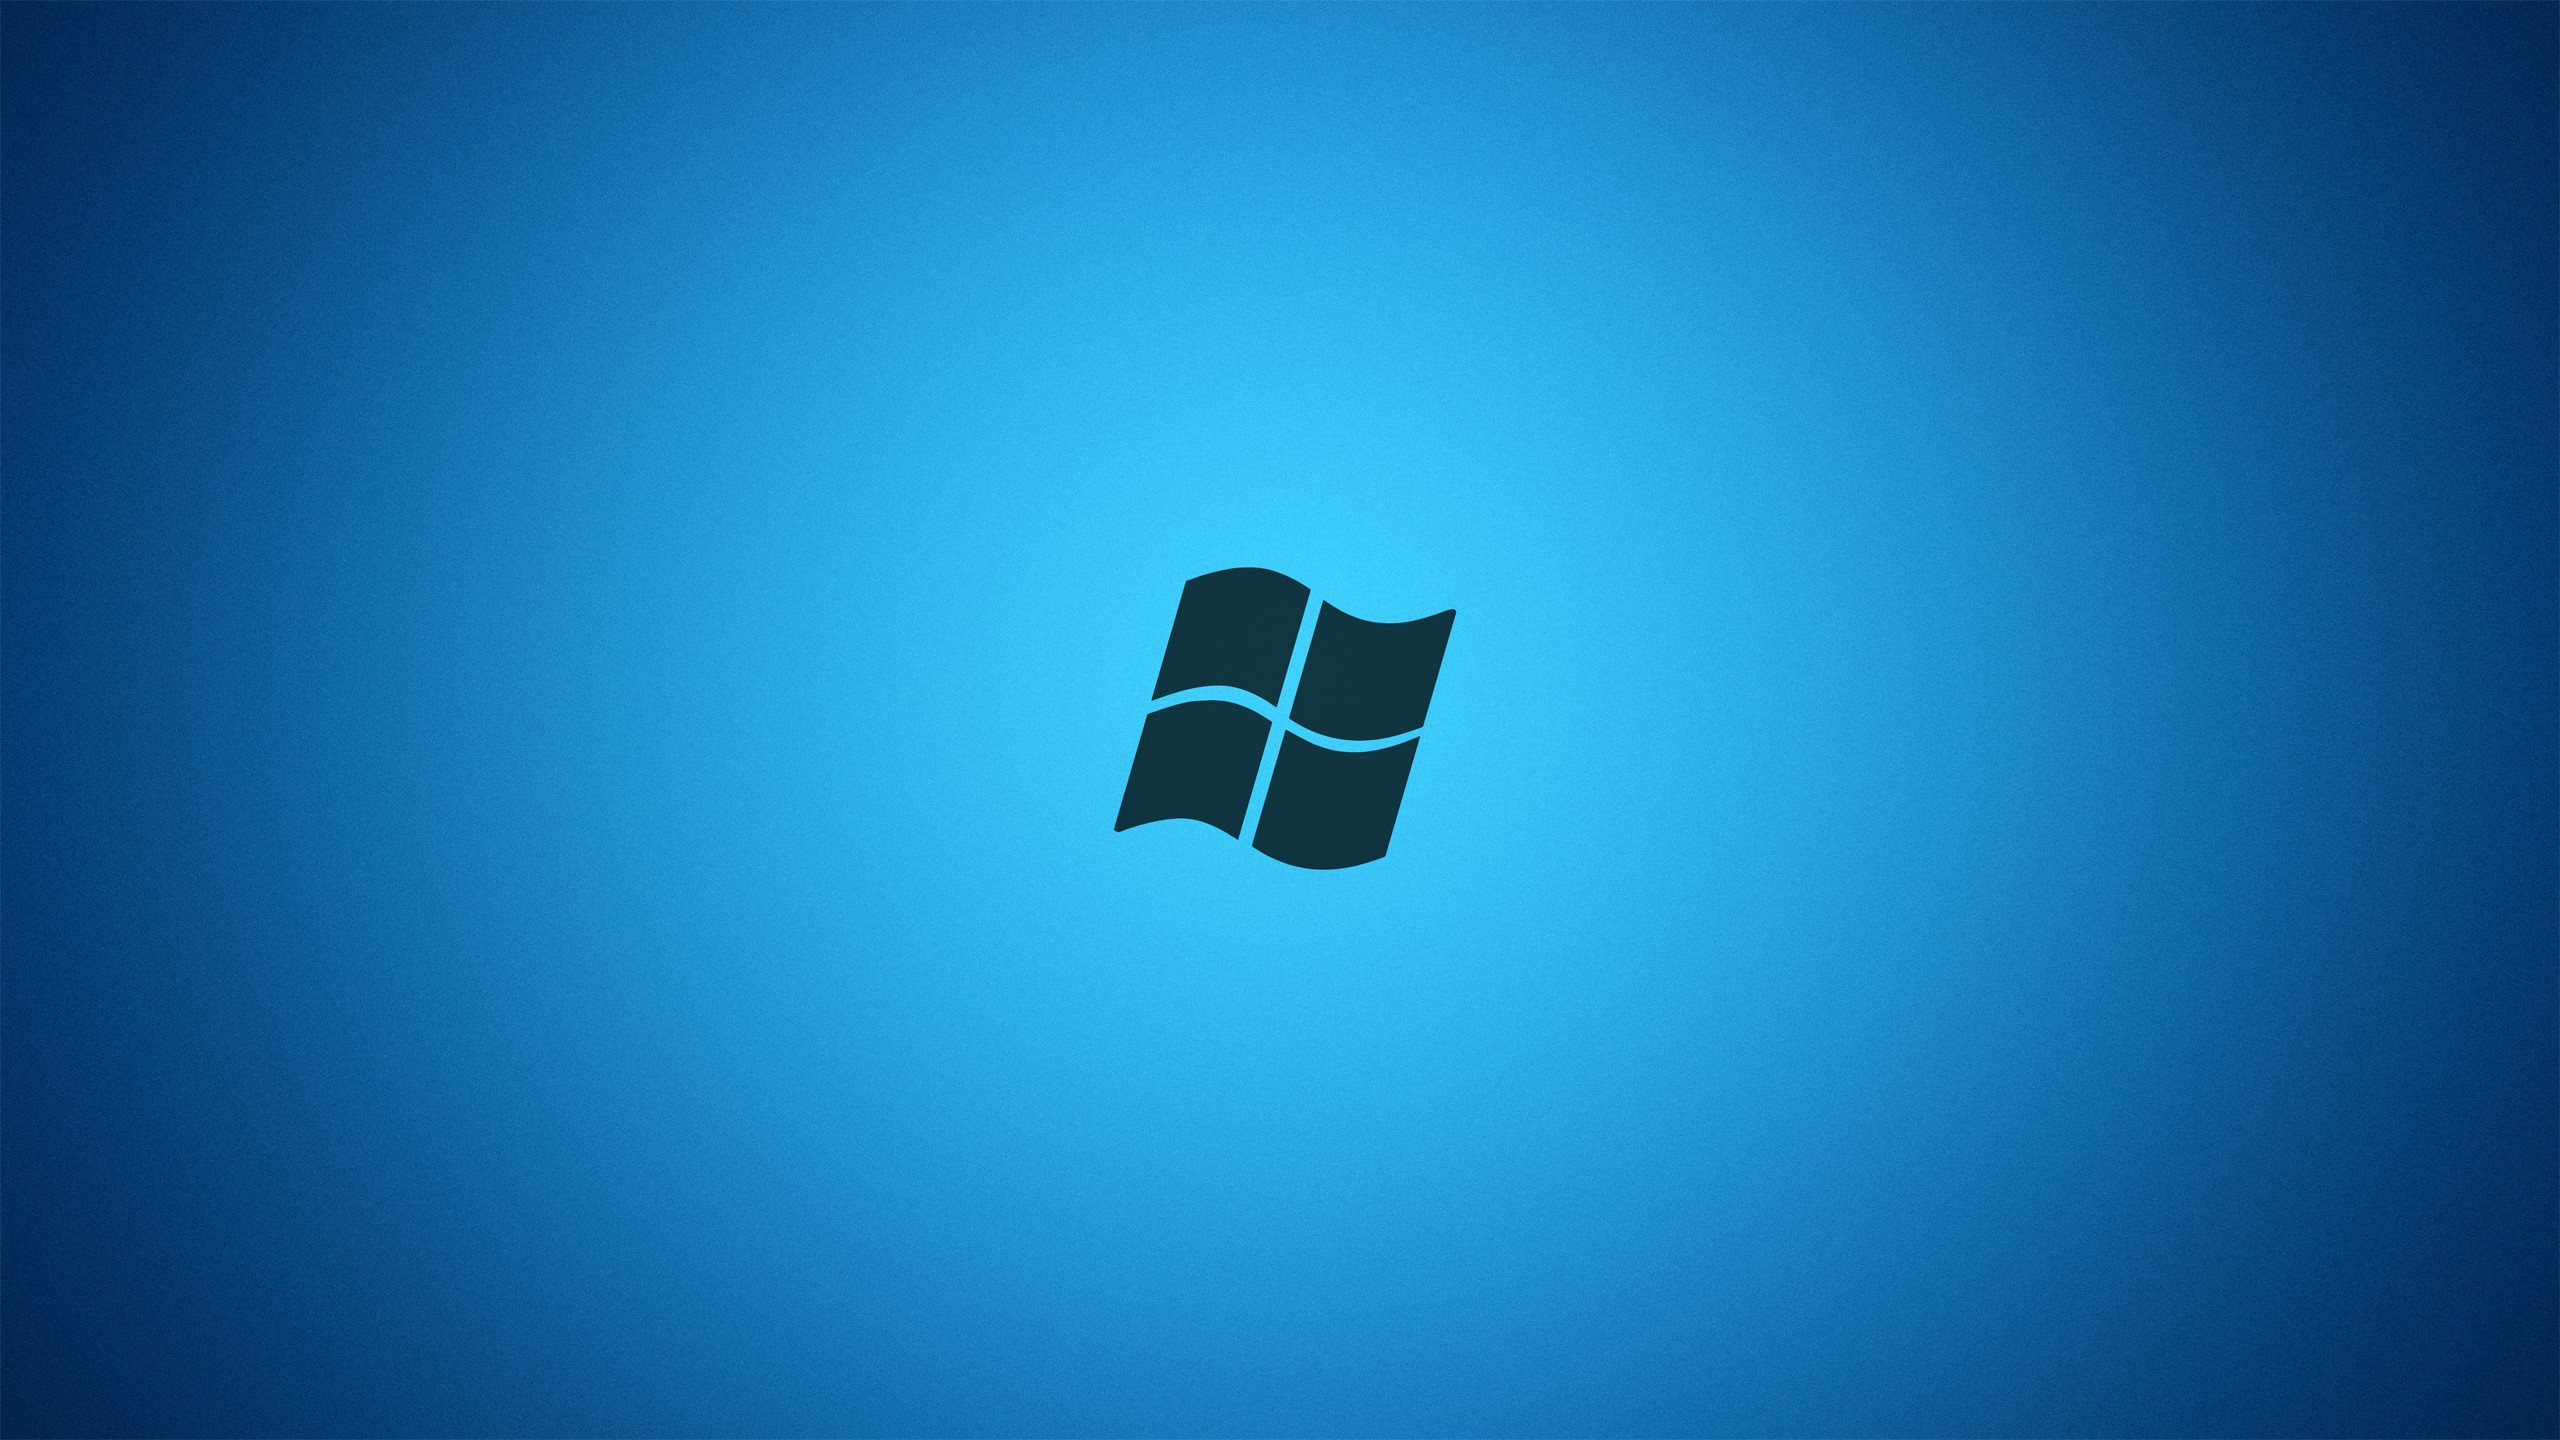 Windows Wallpaper Screensaver Background